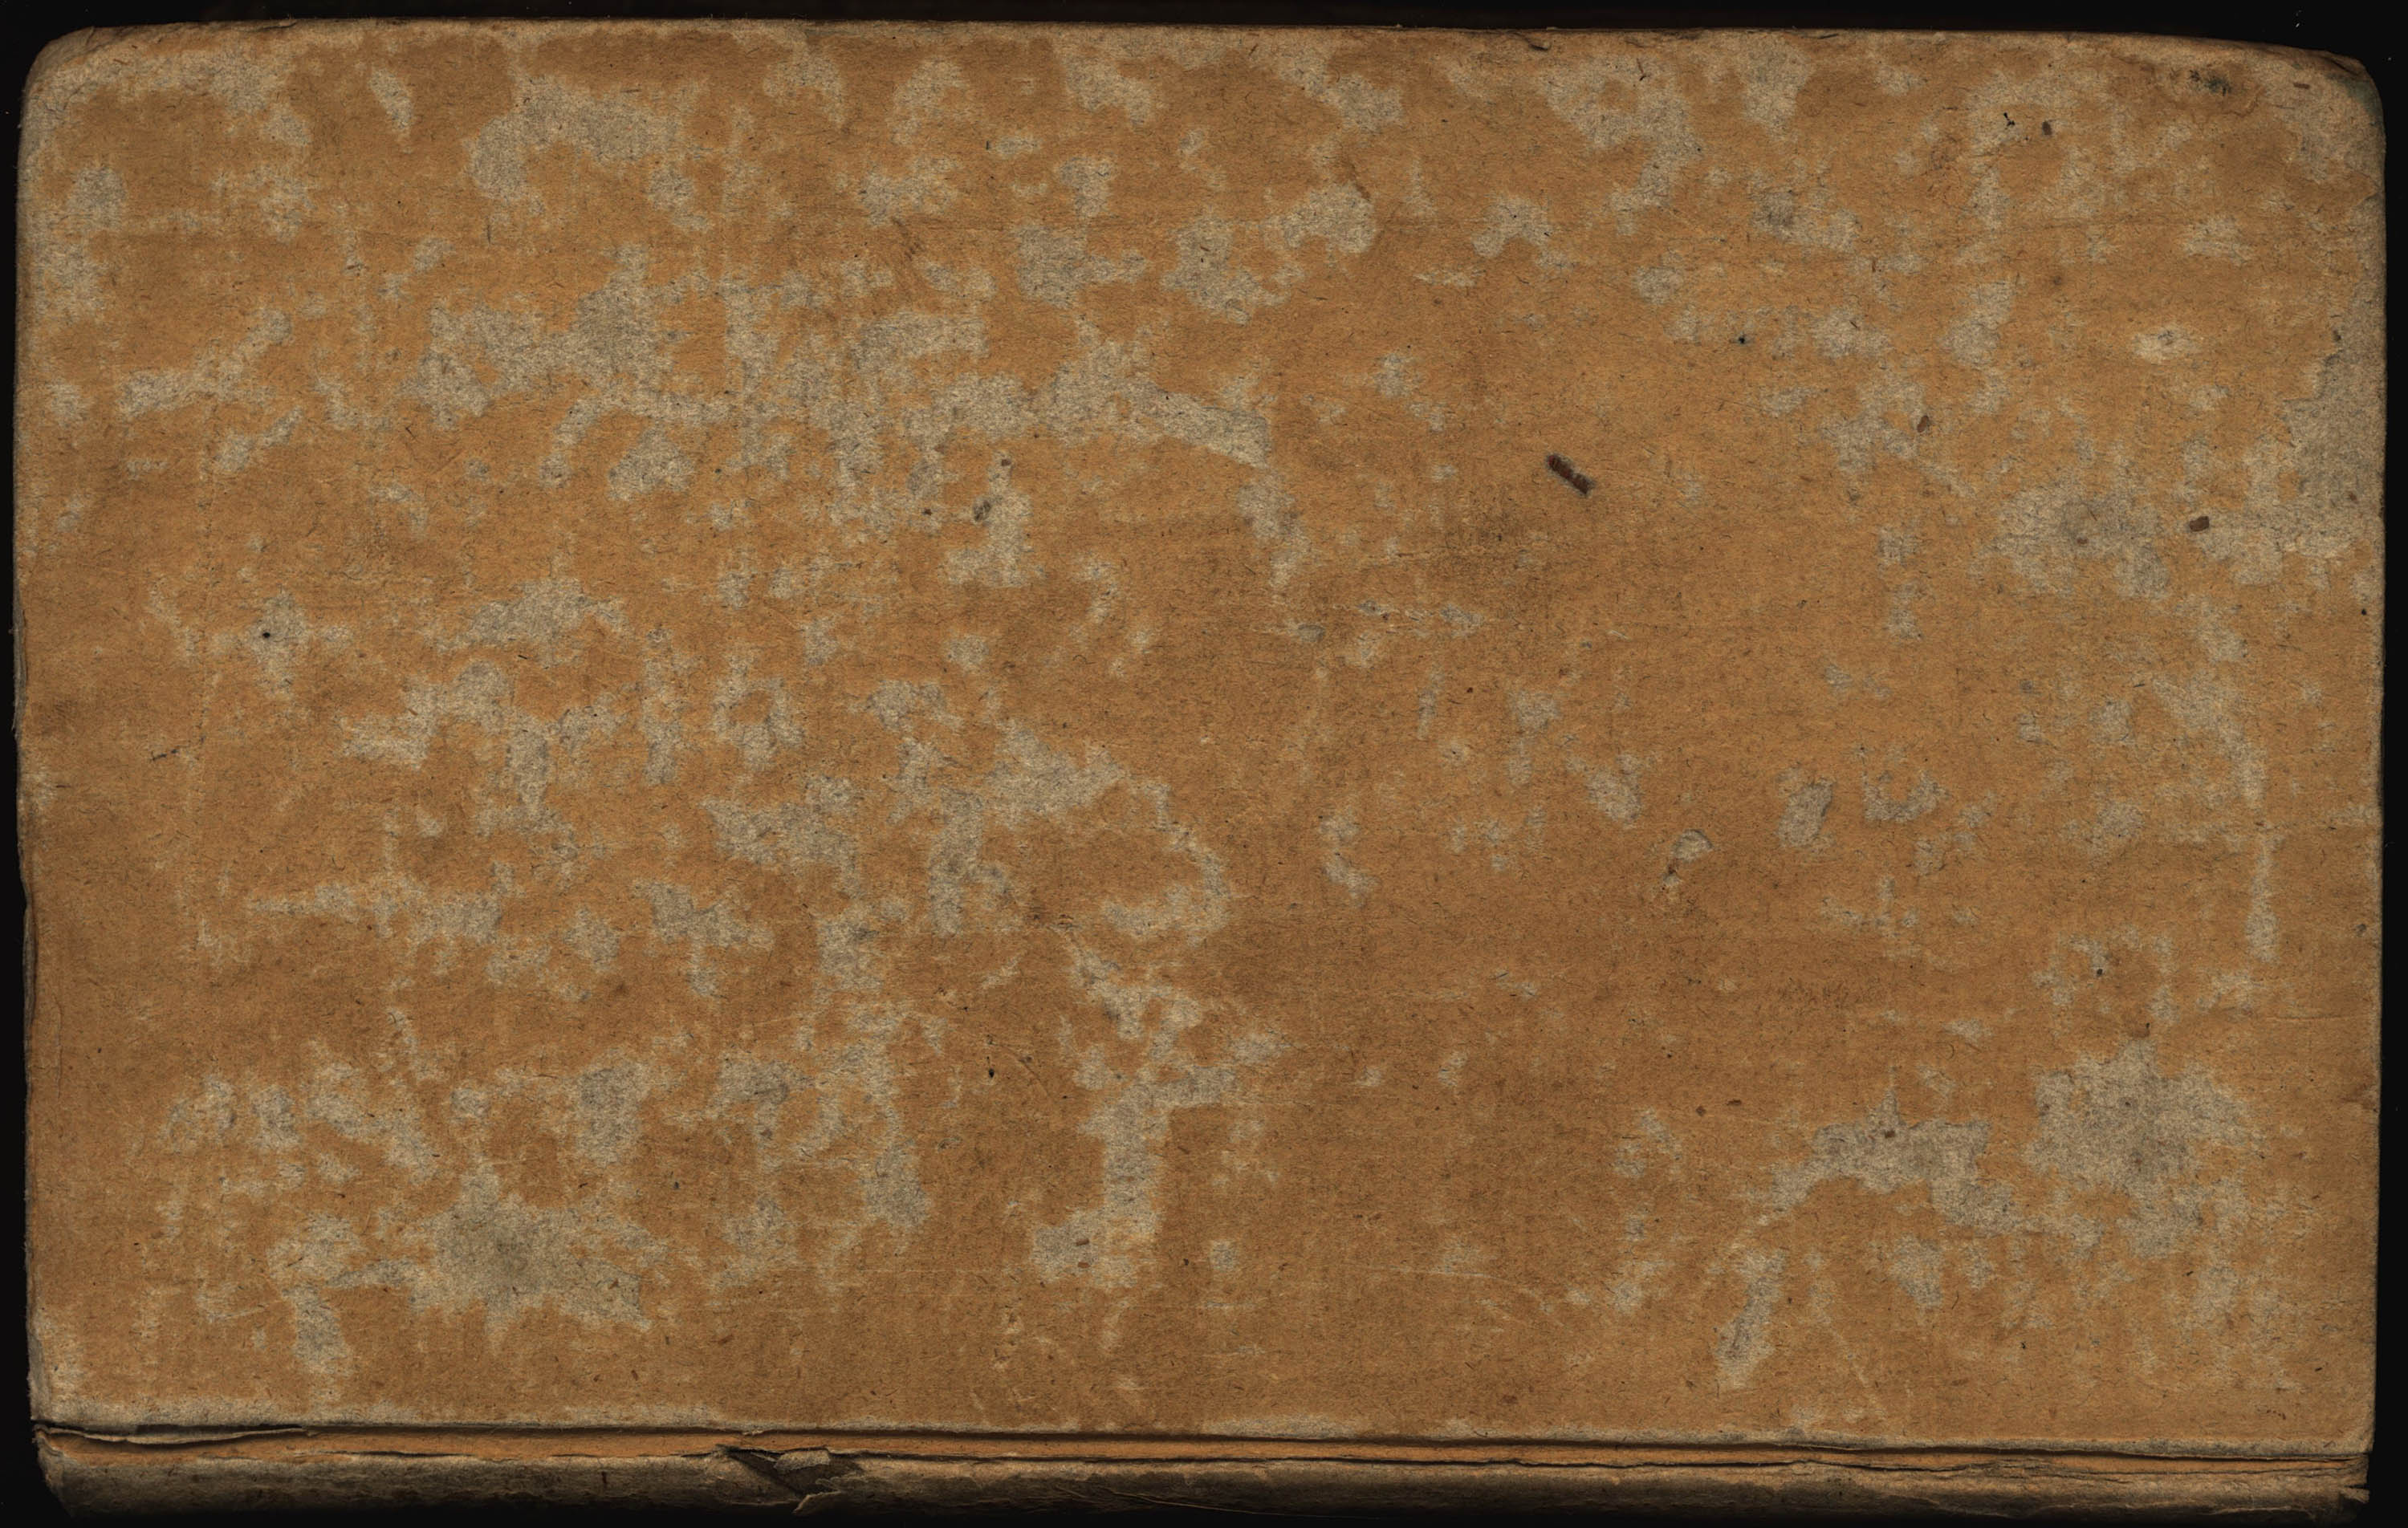 Book Cover Design Texture : Vintage paper book cover texture textures for